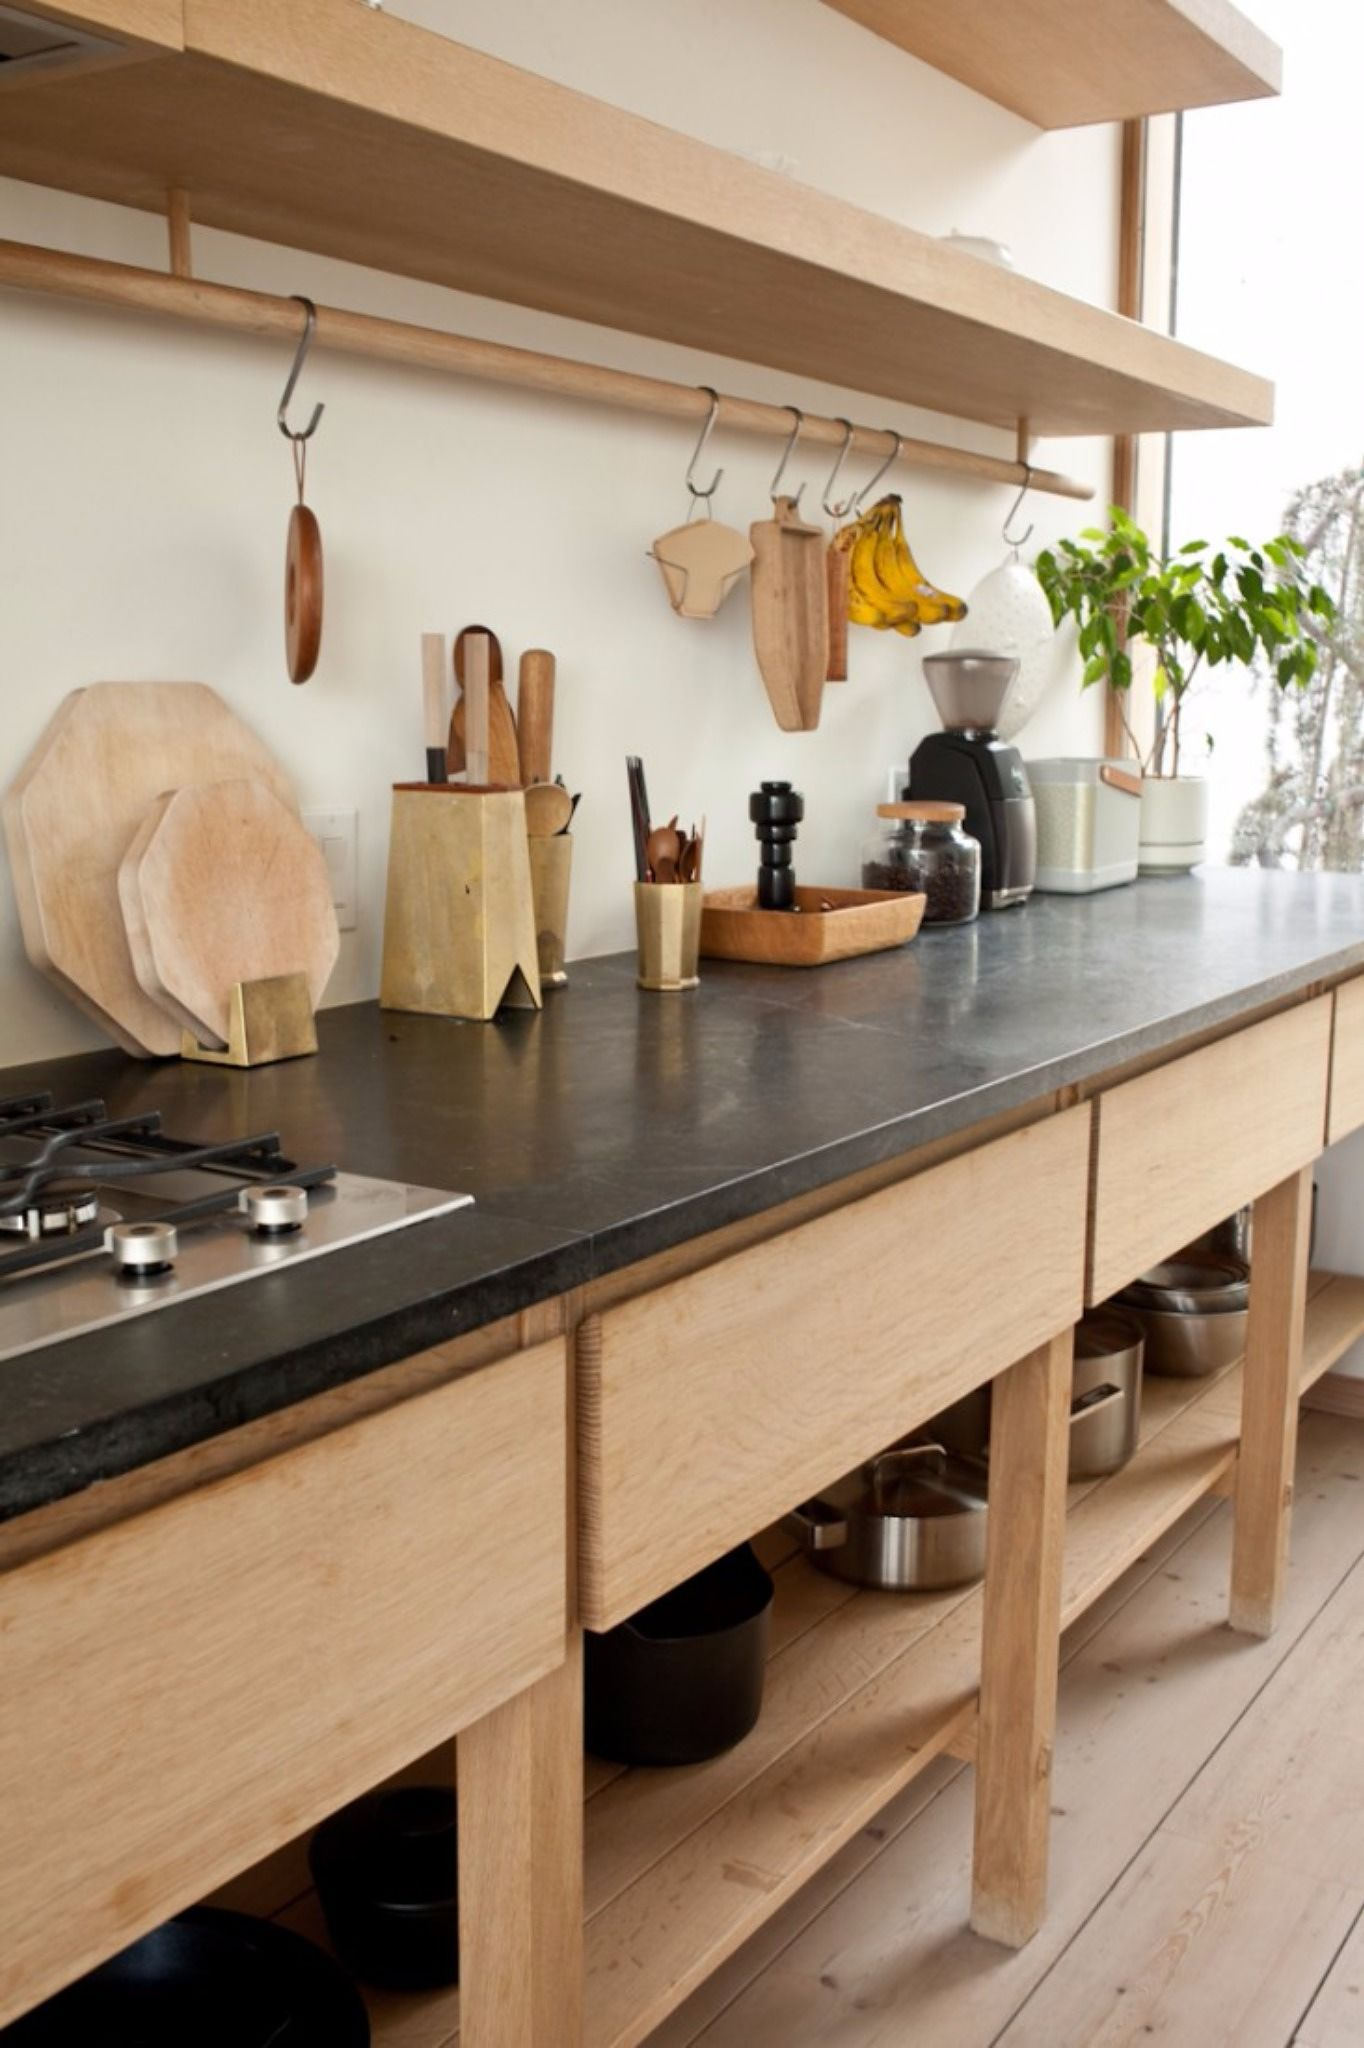 Design by  Juli Daoust and John Baker  via  The Remodelista